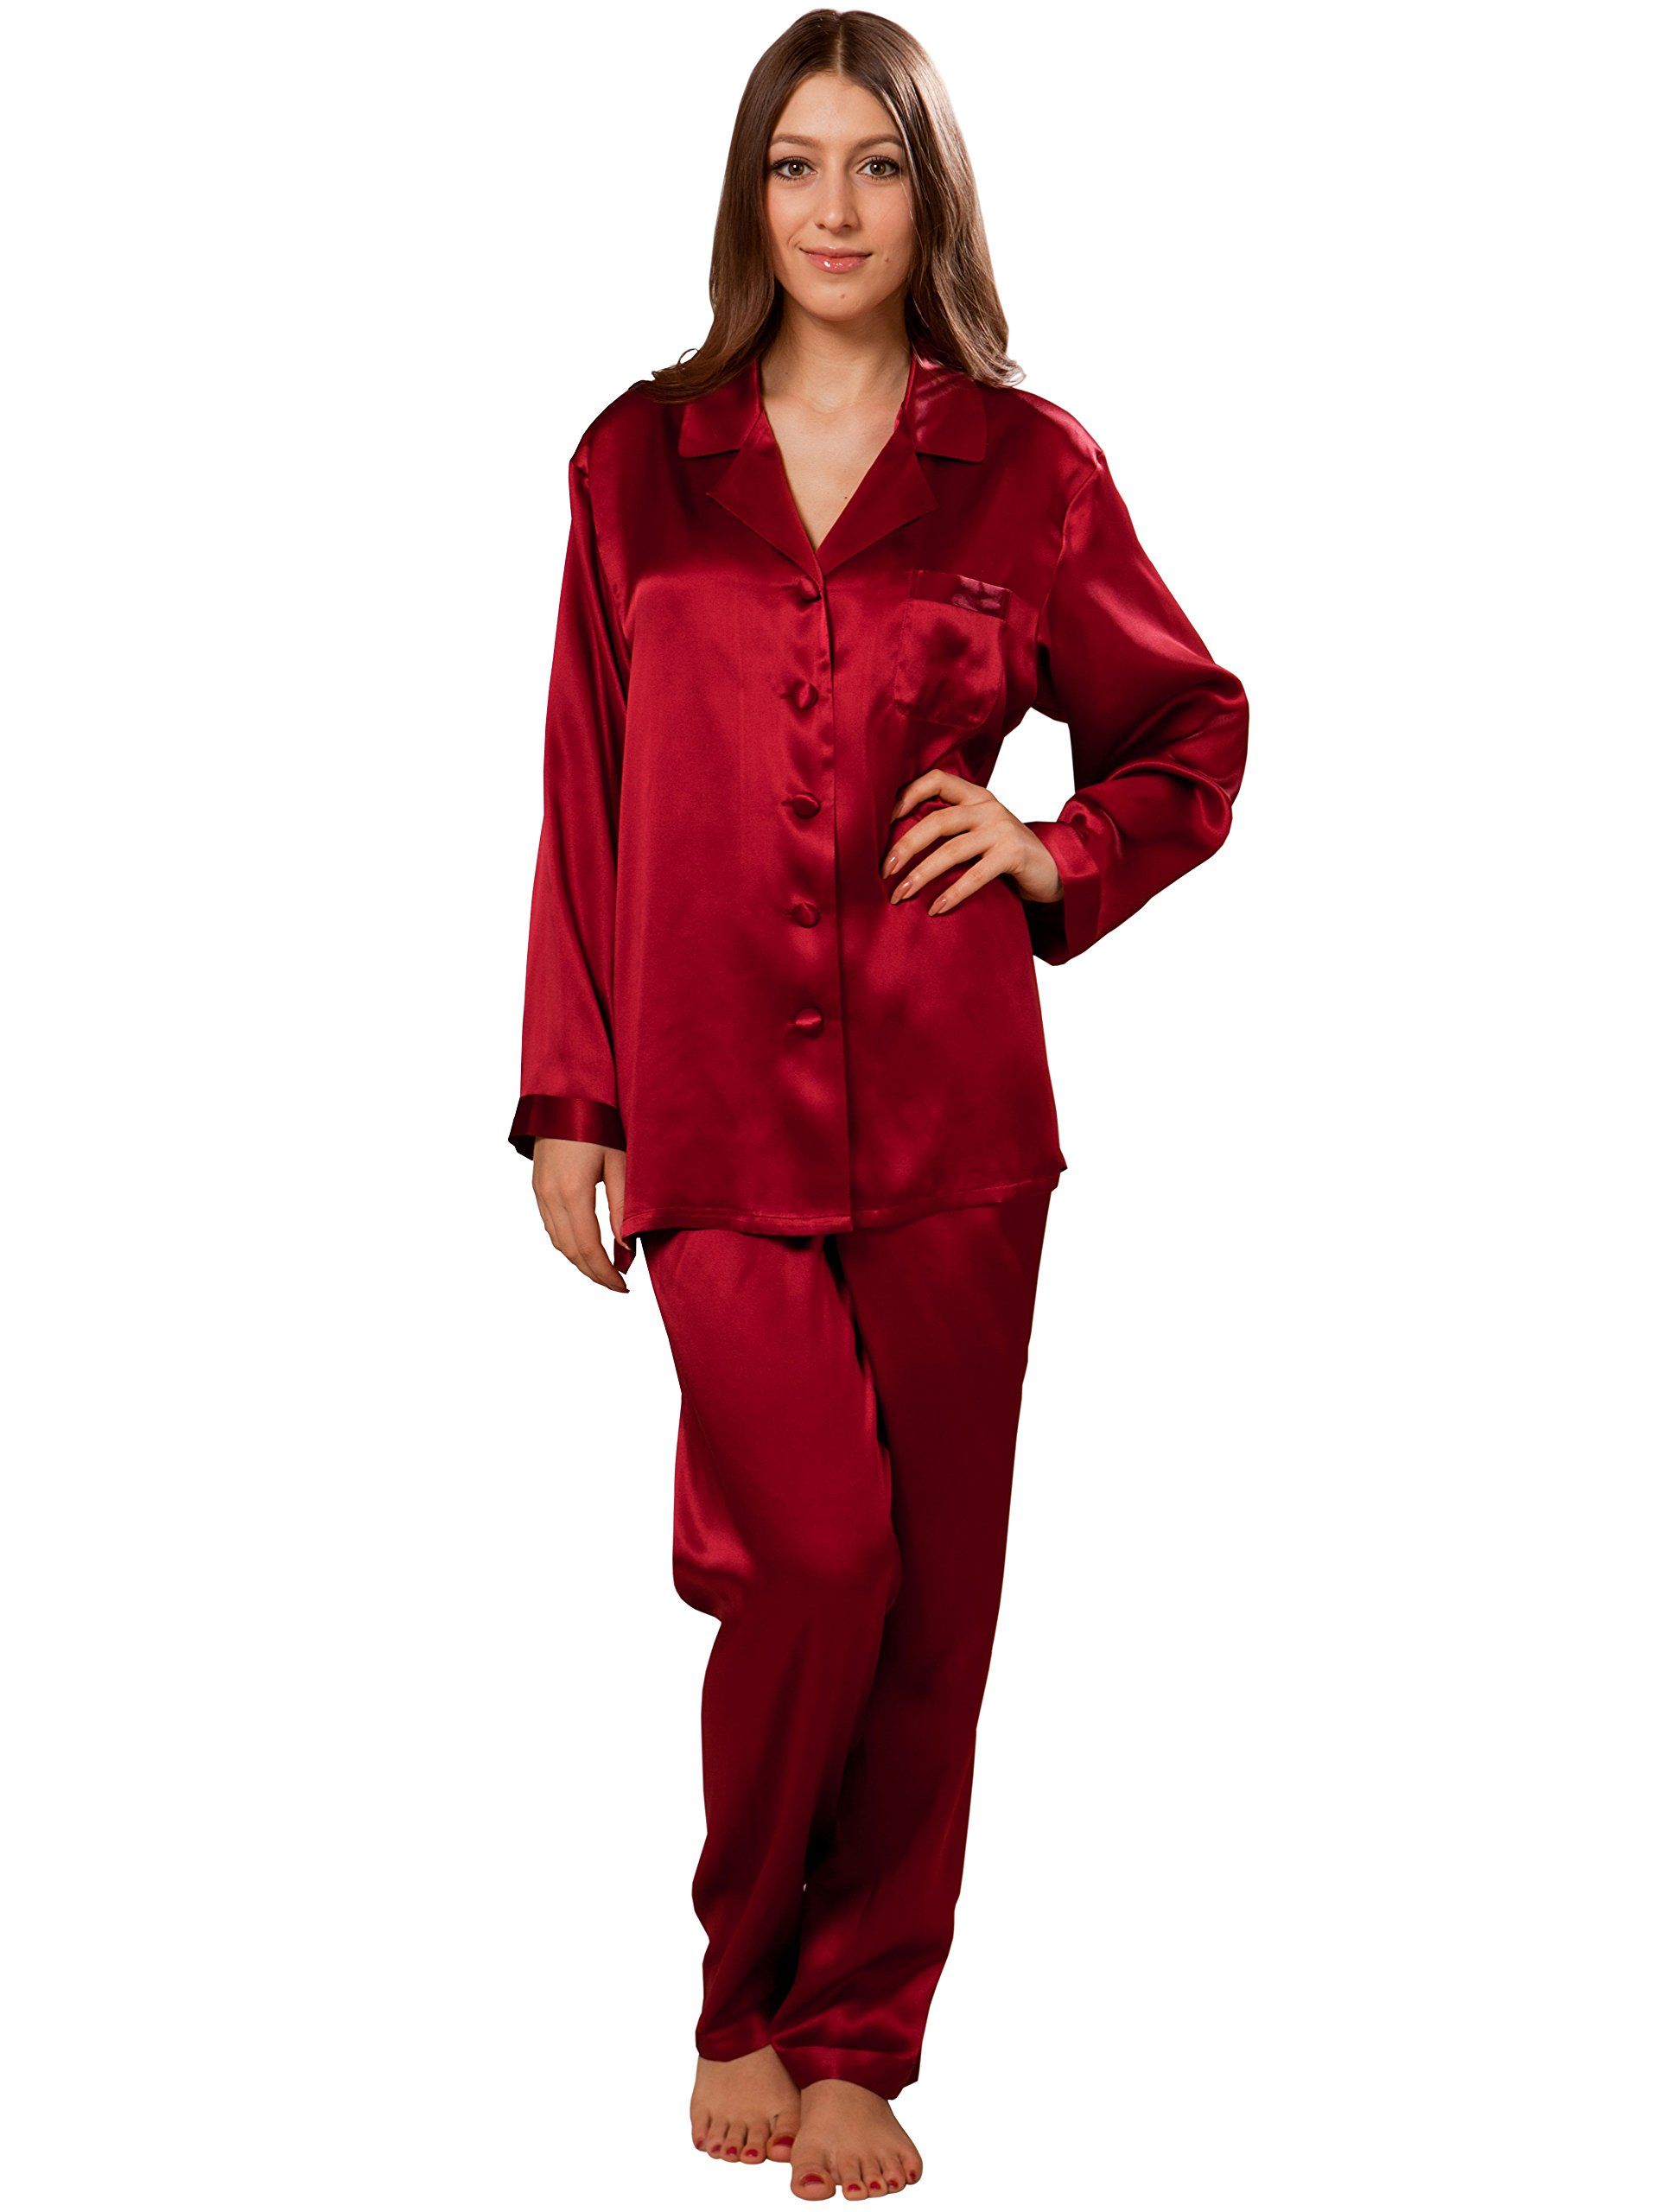 ElleSilk Silk Pajamas For Women, Long Sleeve Silk Sleepwear, Premium Quality Mulberry Silk, Wine, L